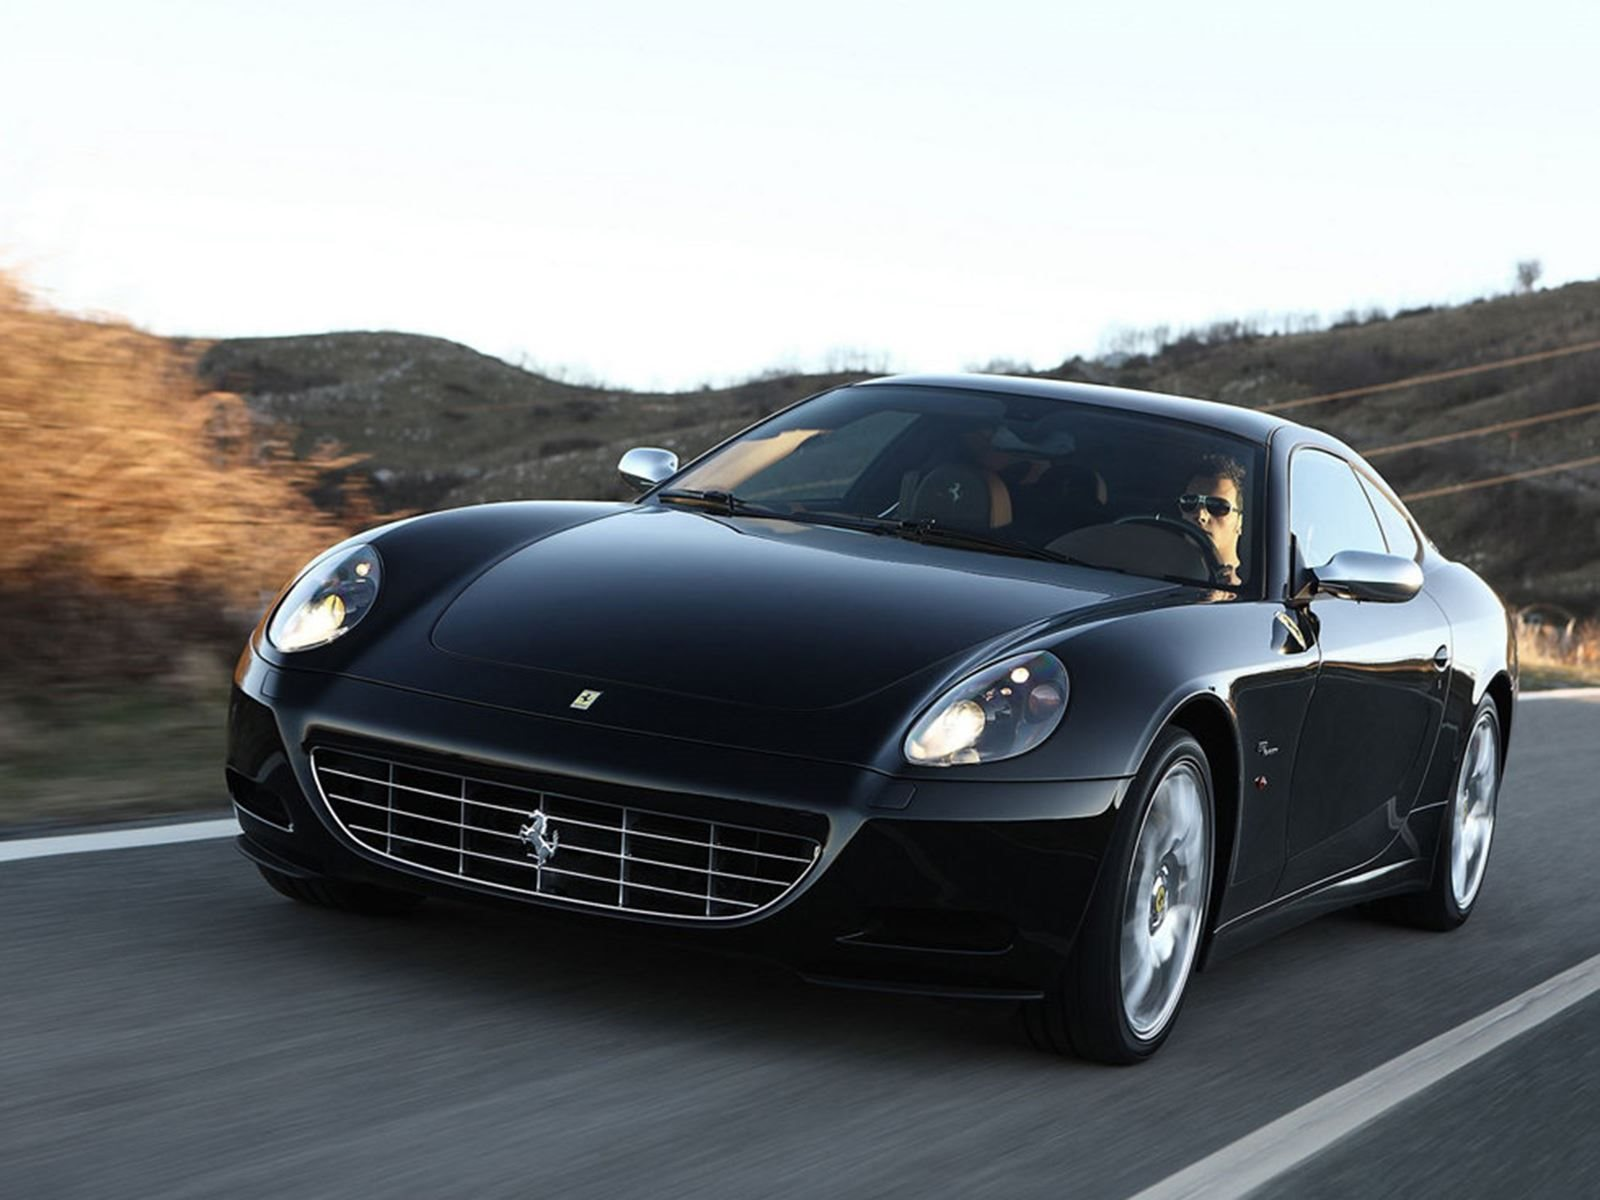 Is A Manual Ferrari Really Worth $200,000 More Than A Normal One? - CarBuzz